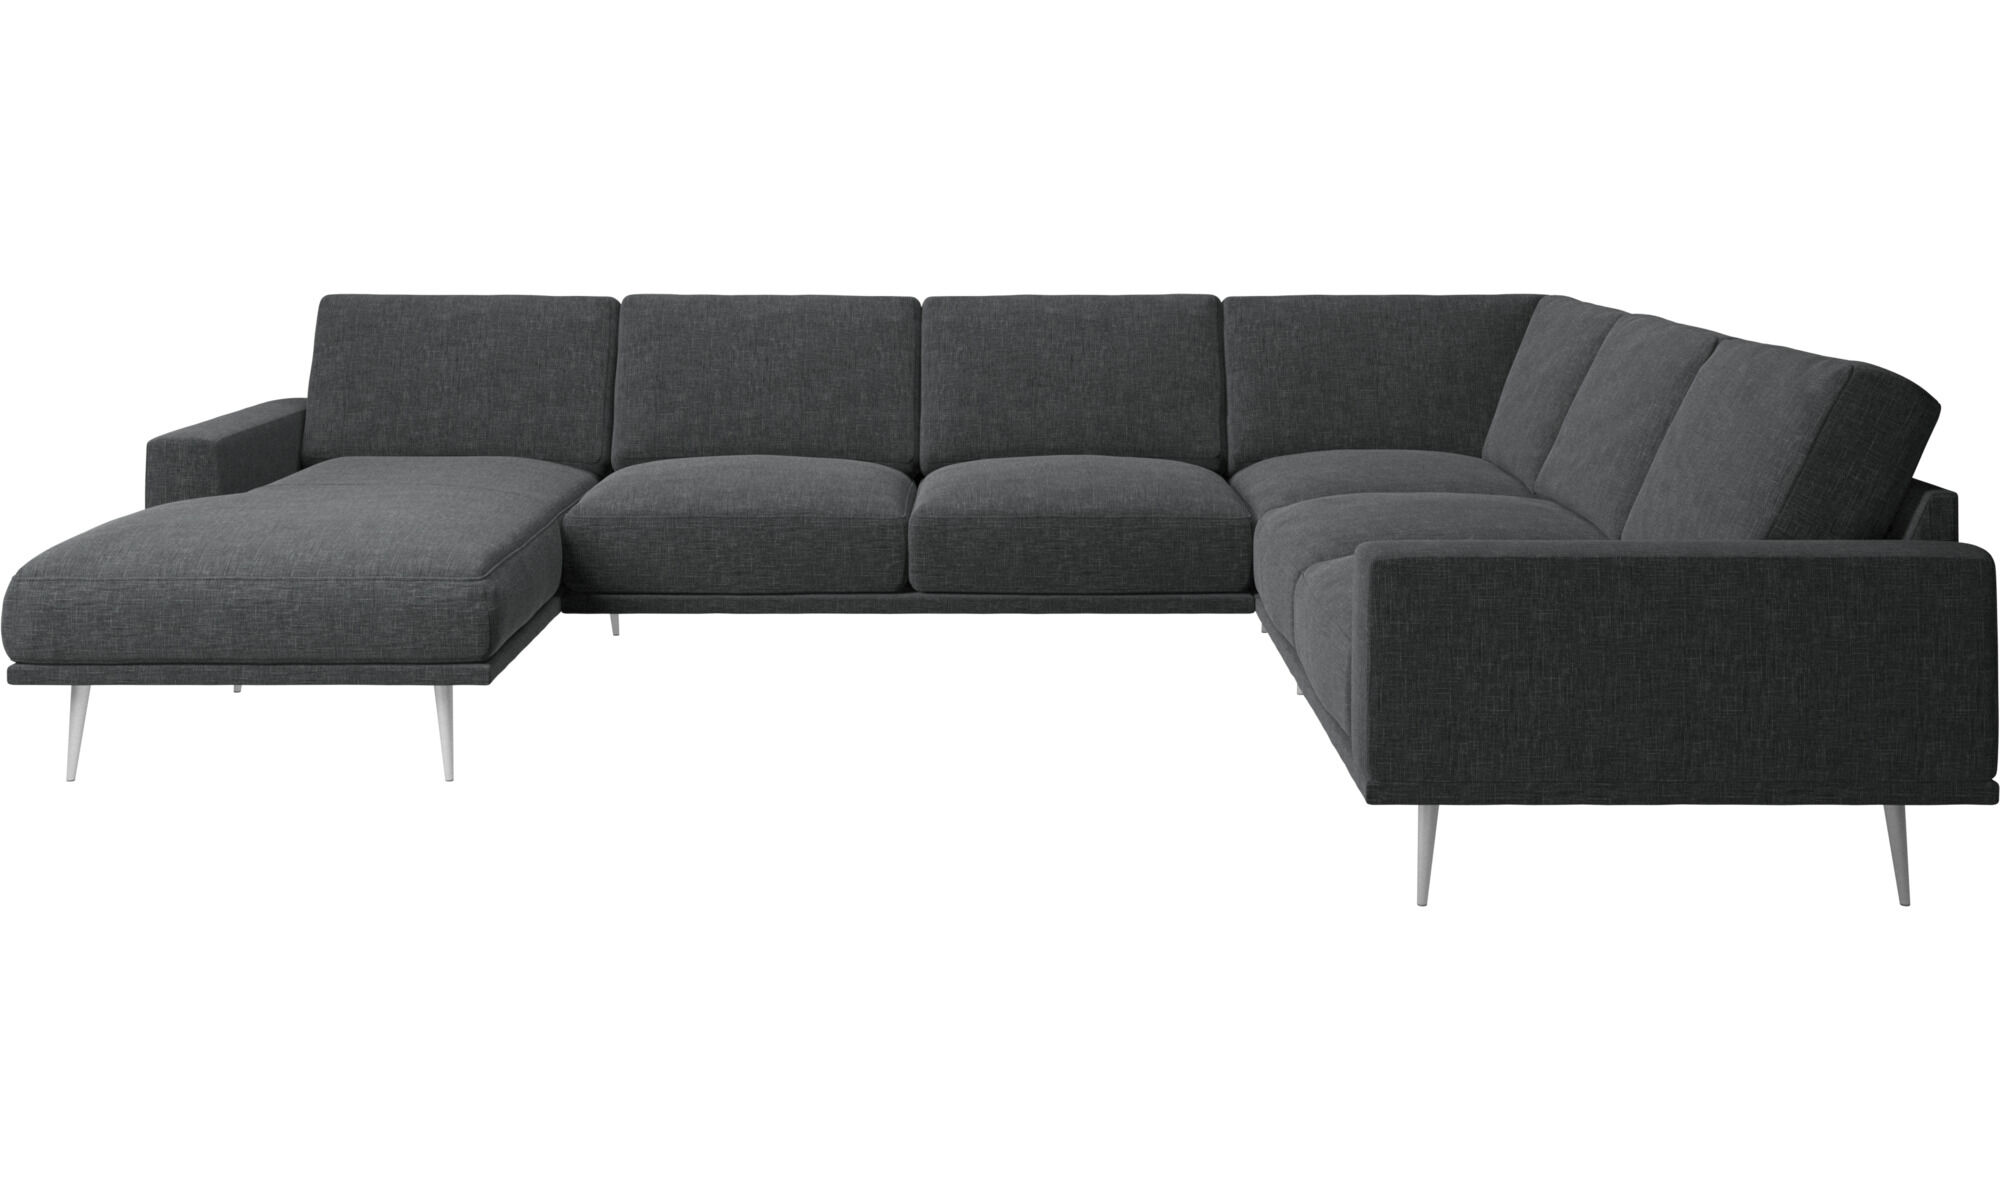 Perfect Chaise Lounge Sofas   Carlton Corner Sofa With Resting Unit   Gray   Fabric